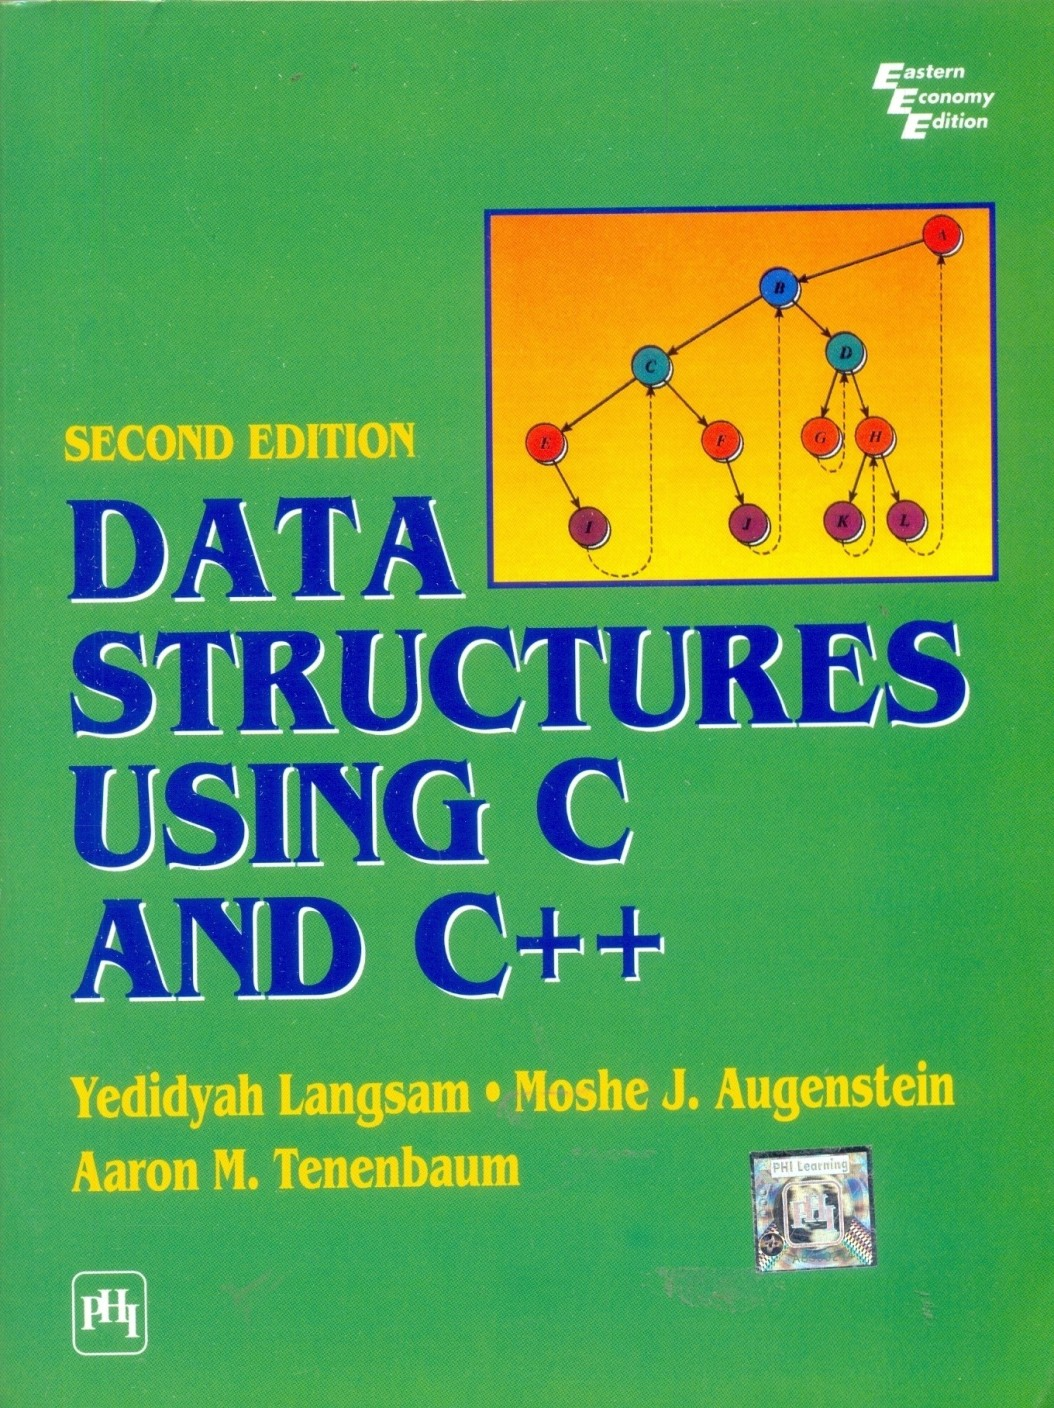 engineering problem solving with c++ 2nd edition pdf